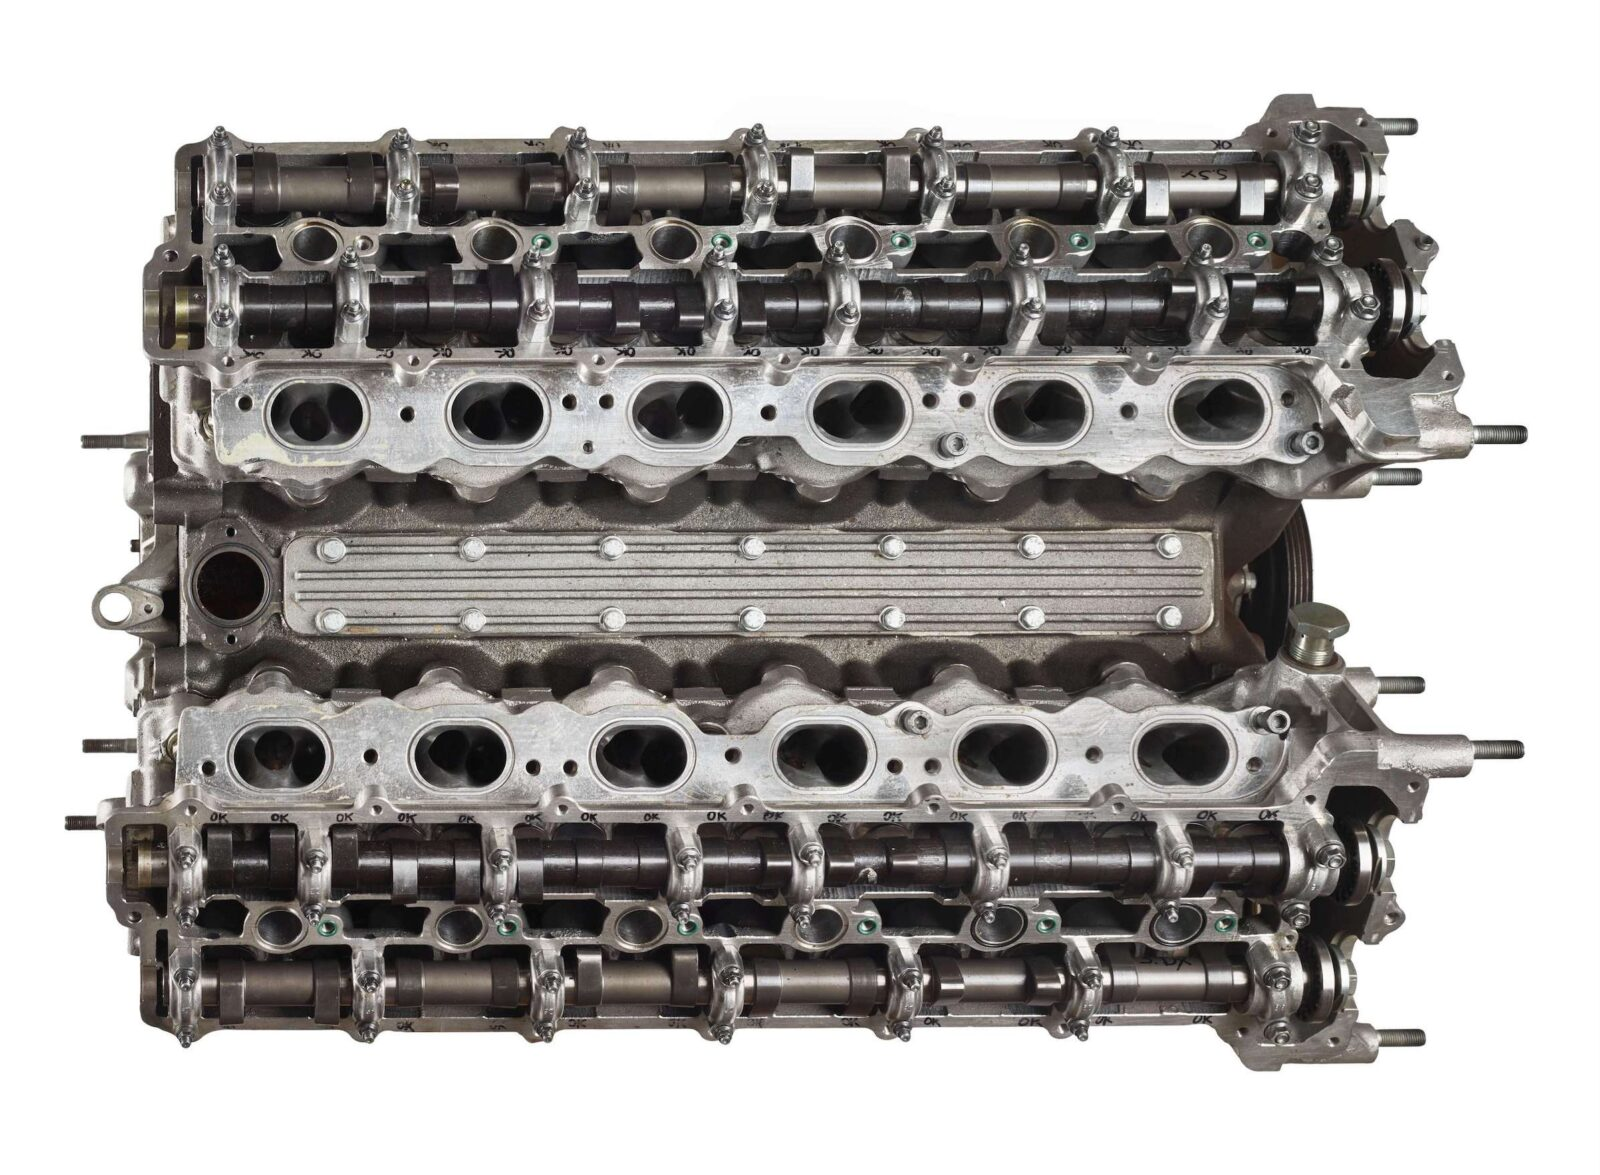 Ferrari F50 V12 Engine Cams